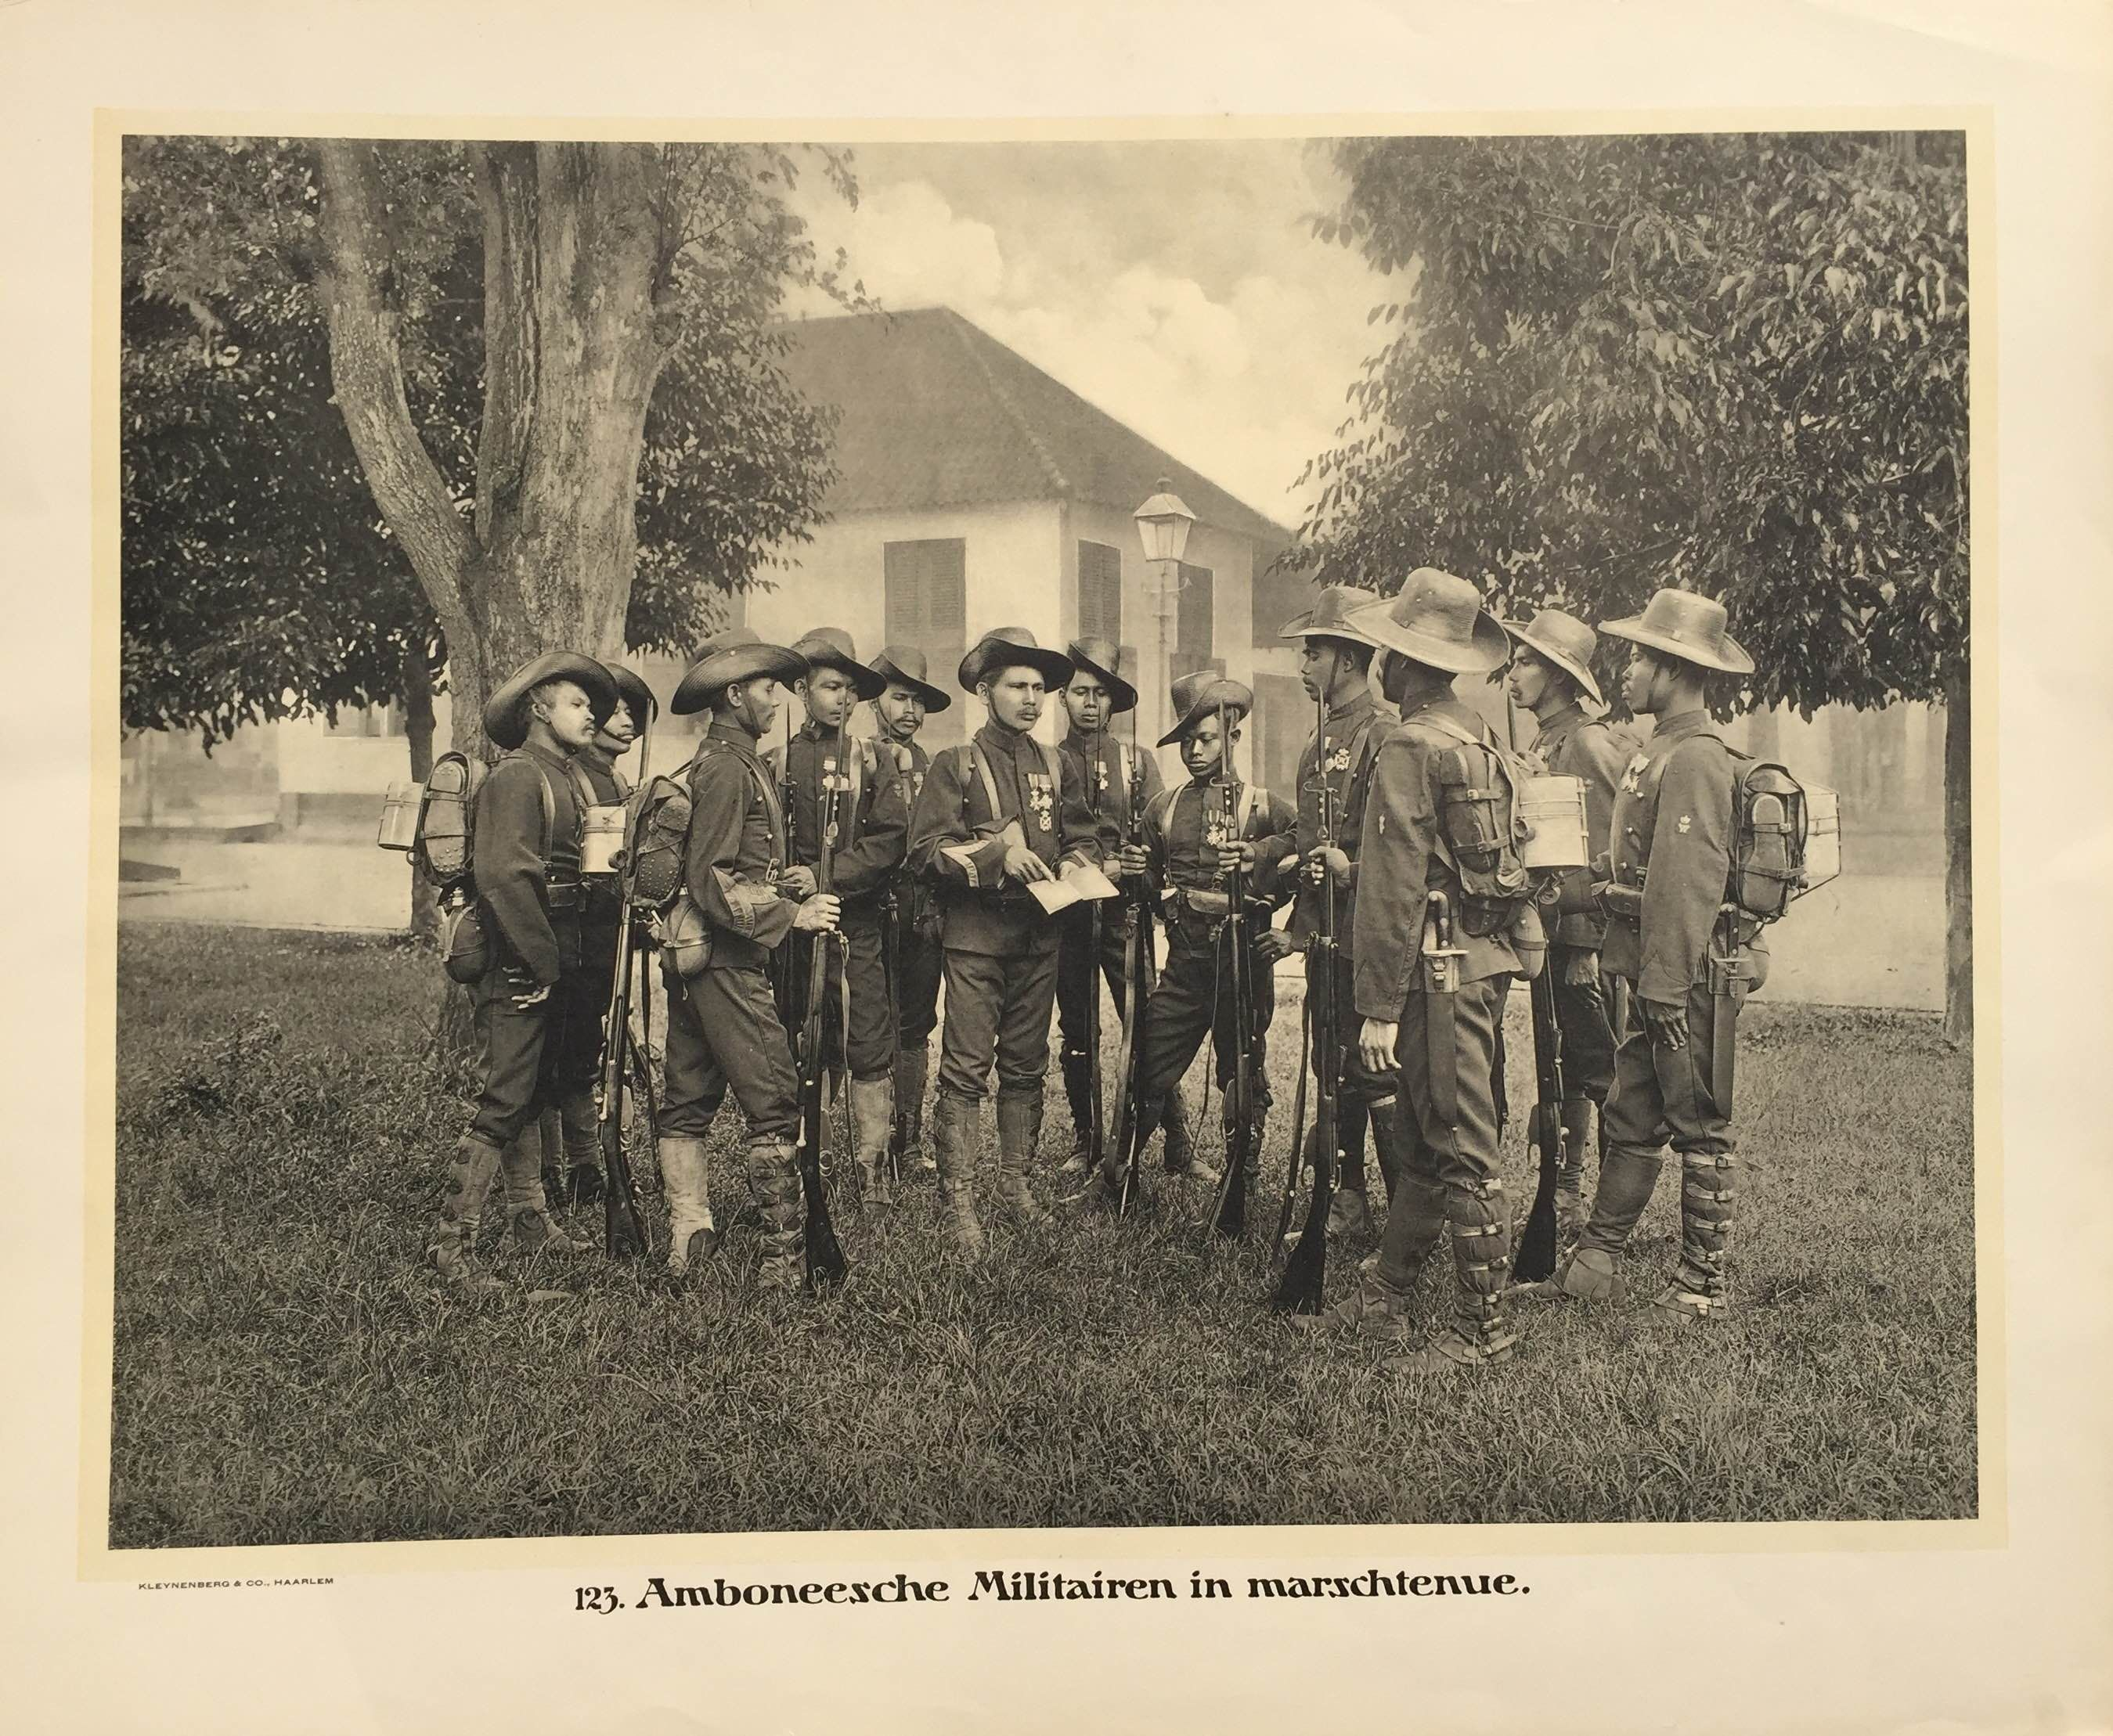 123. Amboneesche Militairen in marshtenue. Antique school board of Ambonese soldiers in marching tunics. Taken c.1895 and published between 1912 and 1914 in Holland. Ambonese soldiers, shown in this plate wearing their marching tunics, were...